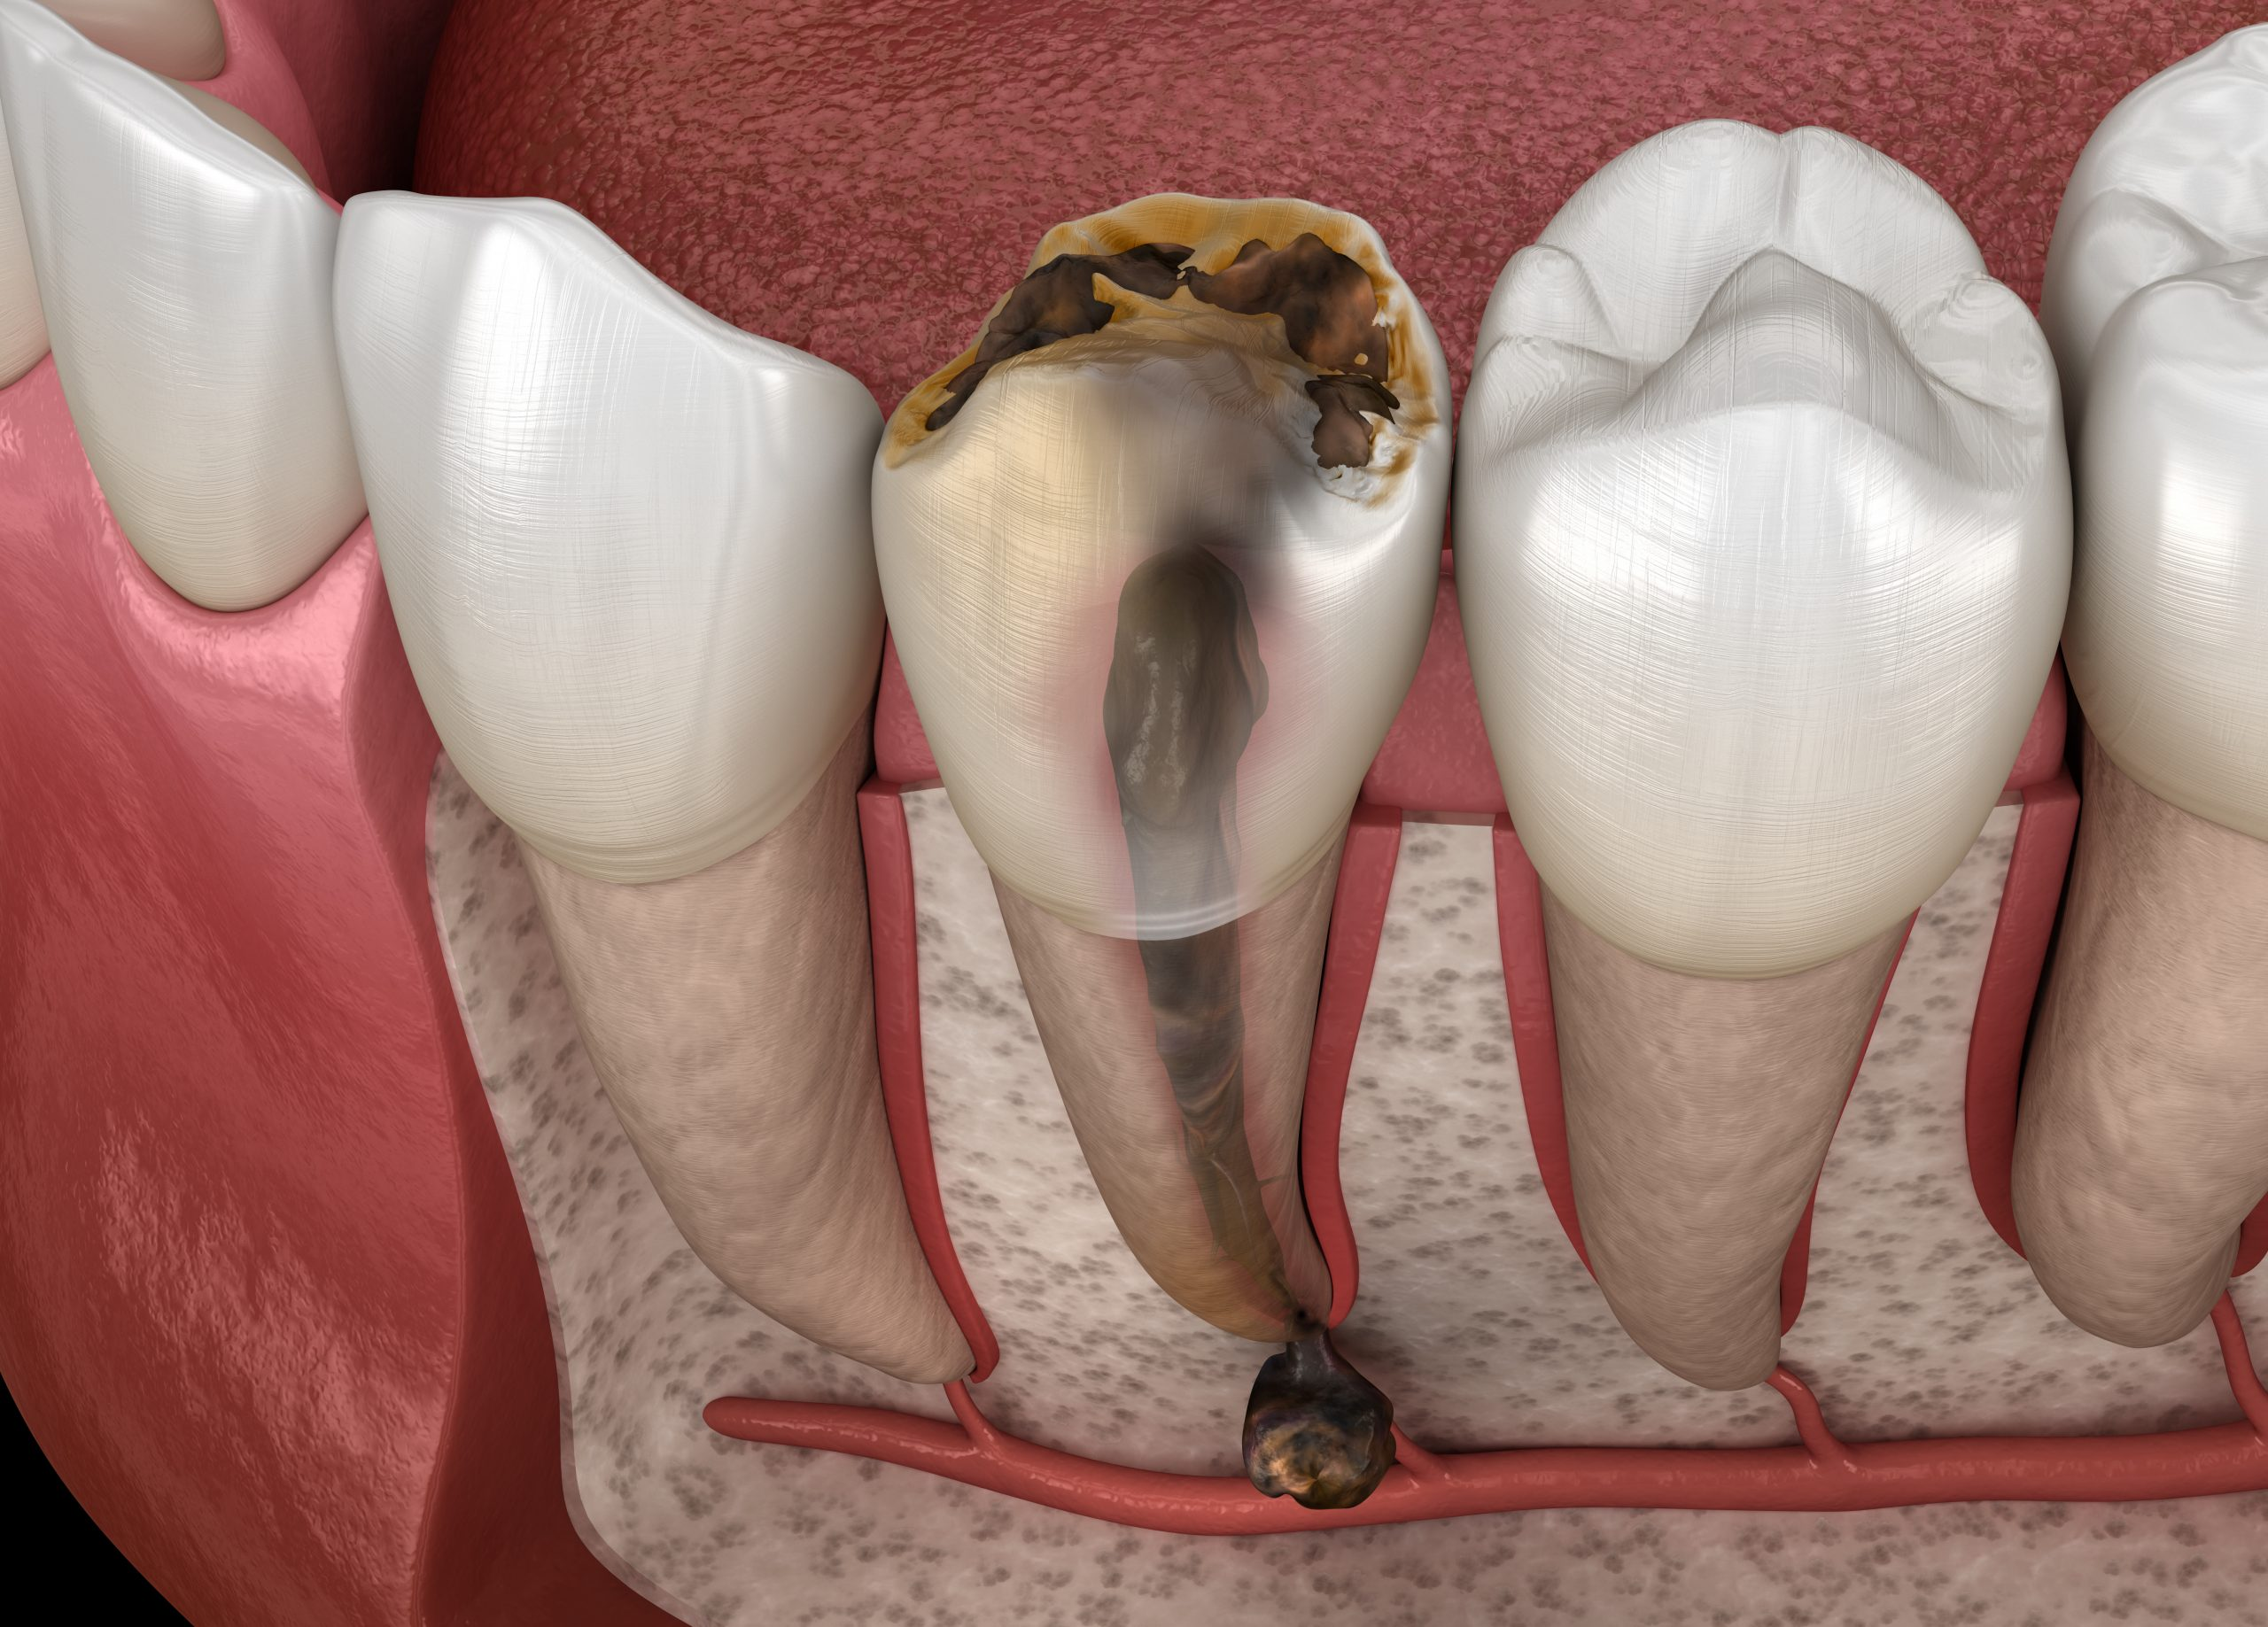 Periostitis tooth - Lump on Gum Above Tooth. Medically accurate dental 3D illustration